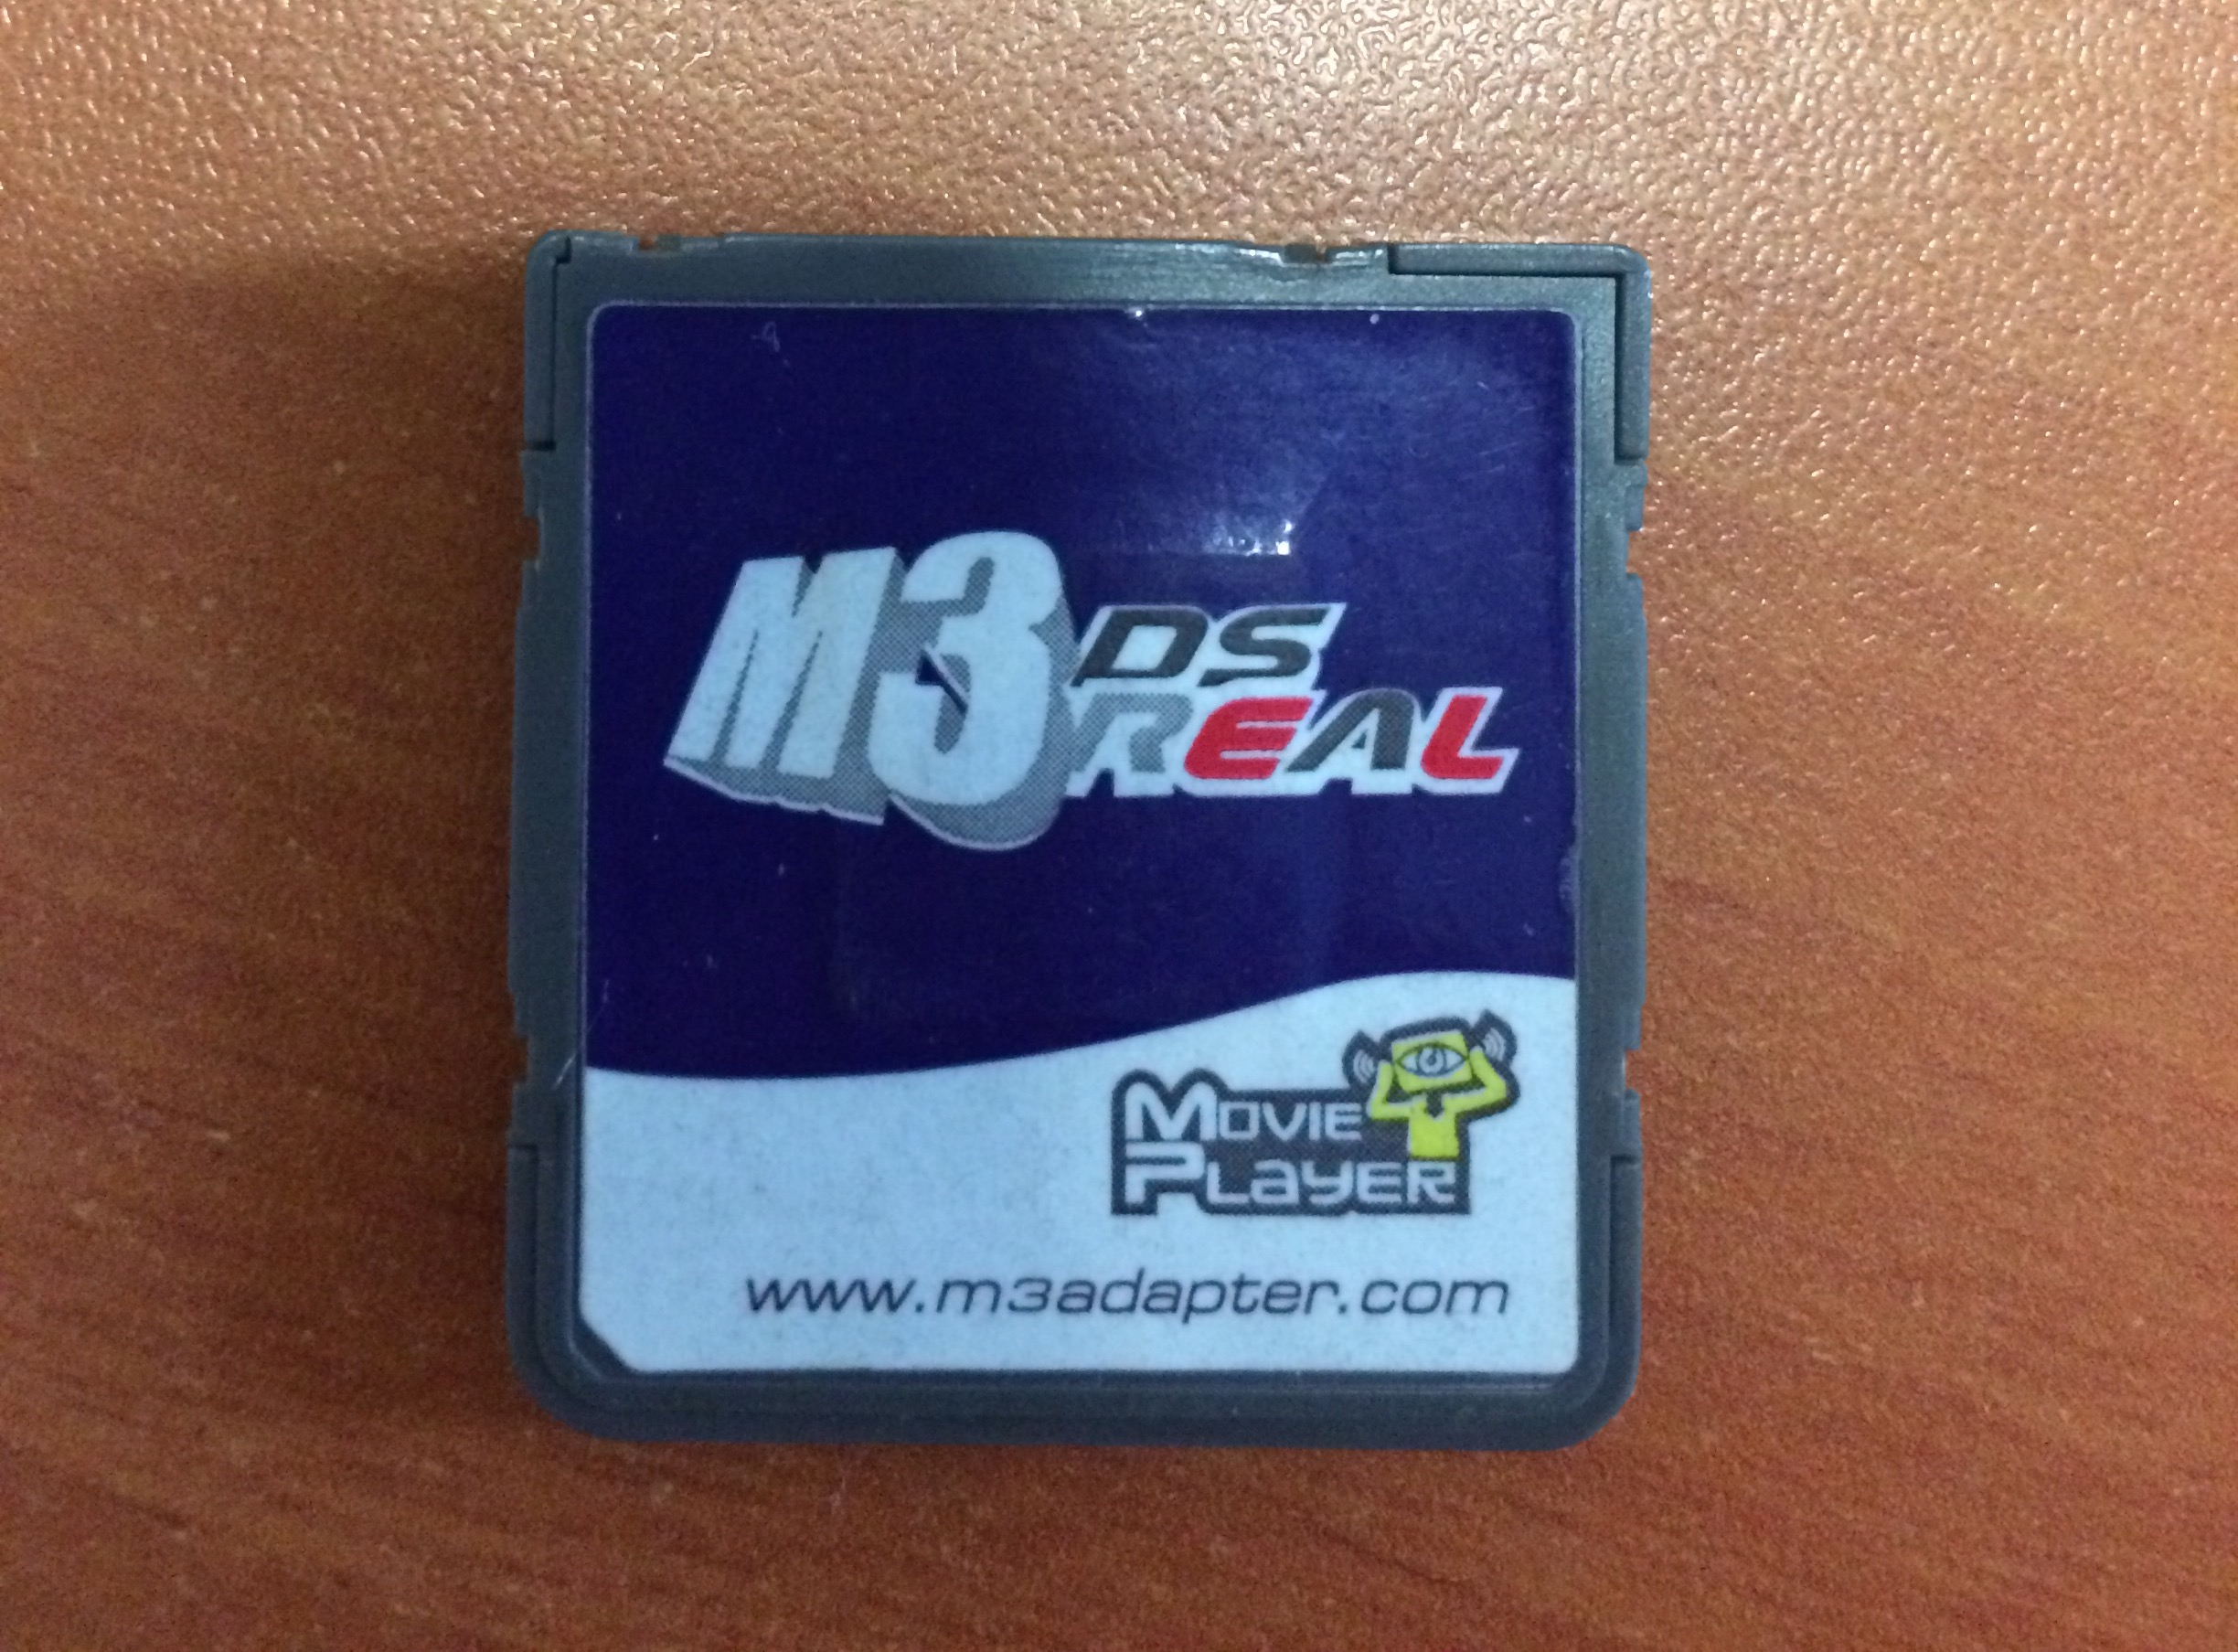 M3DS Real (m3adapter com) · Issue #62 · ntrteam/flashcart_core · GitHub